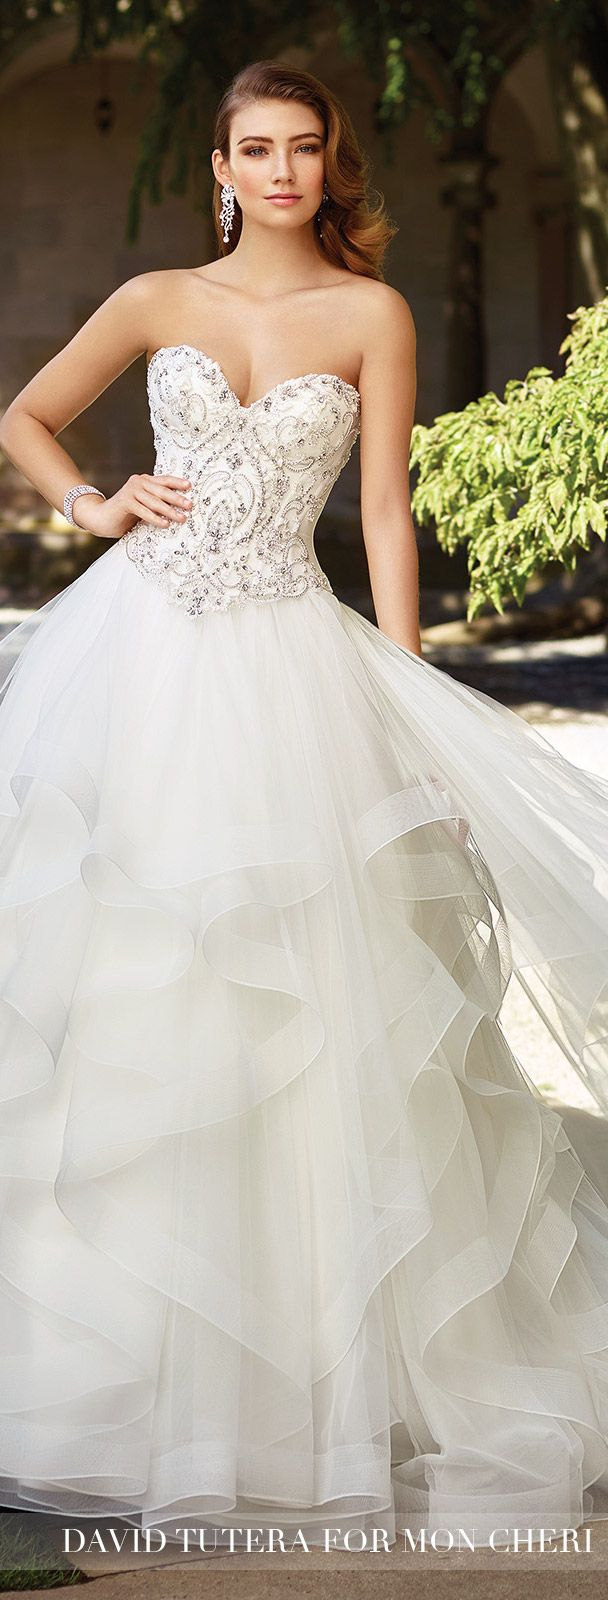 25 best ideas about wedding store on pinterest diy for David tutera beach wedding dresses